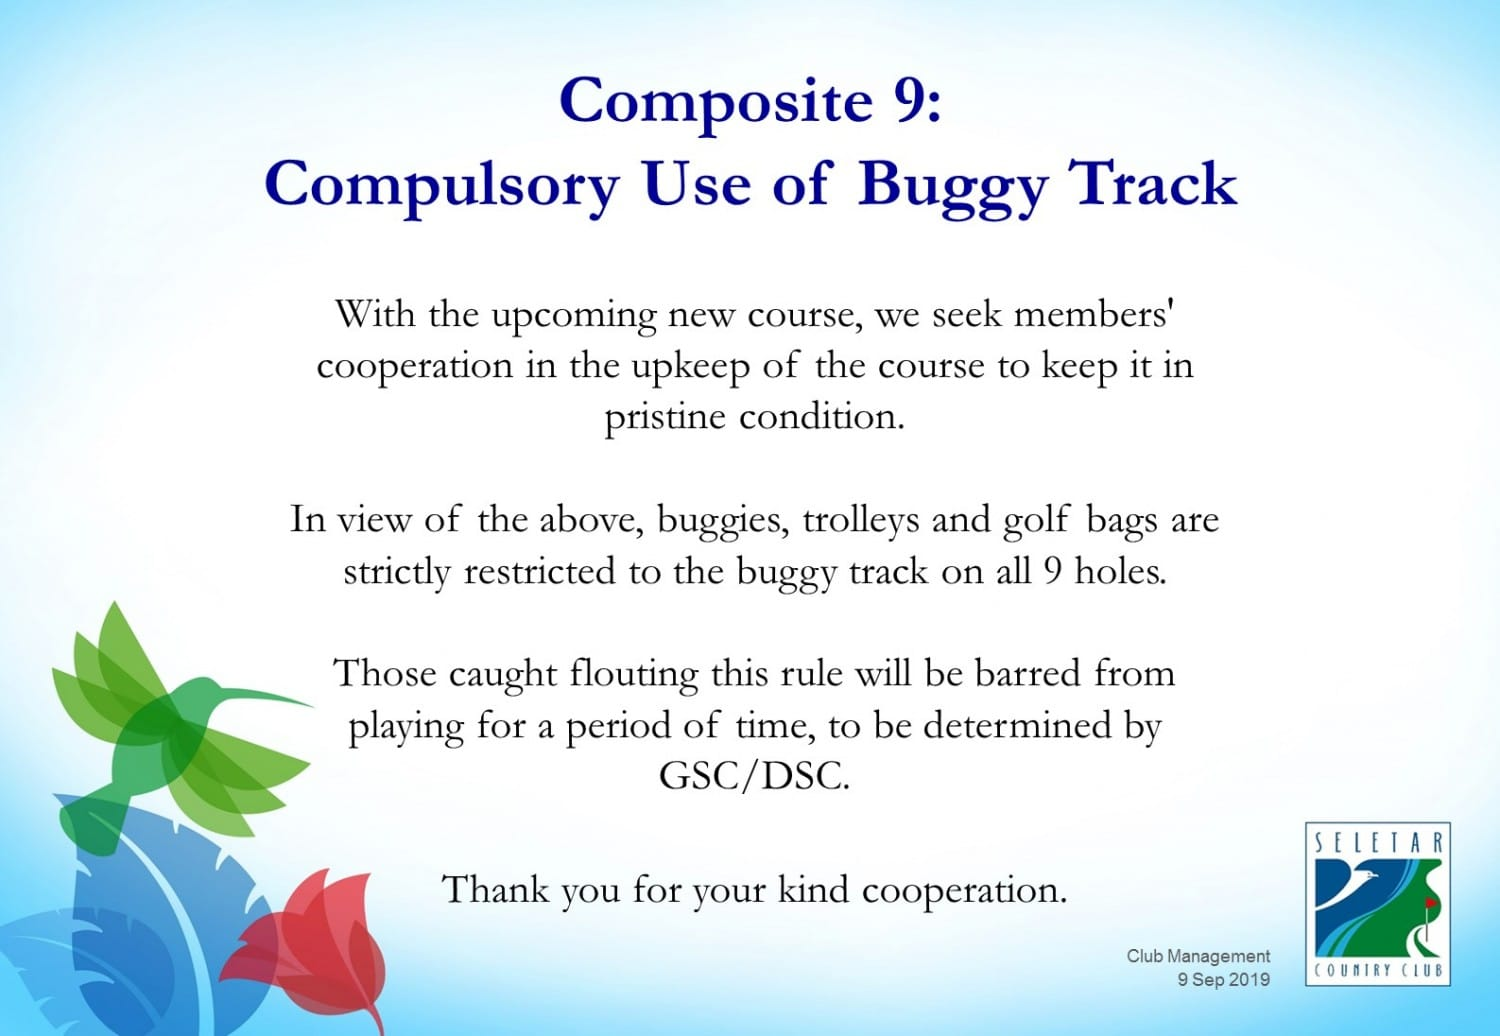 Composite 9C_buggy track only